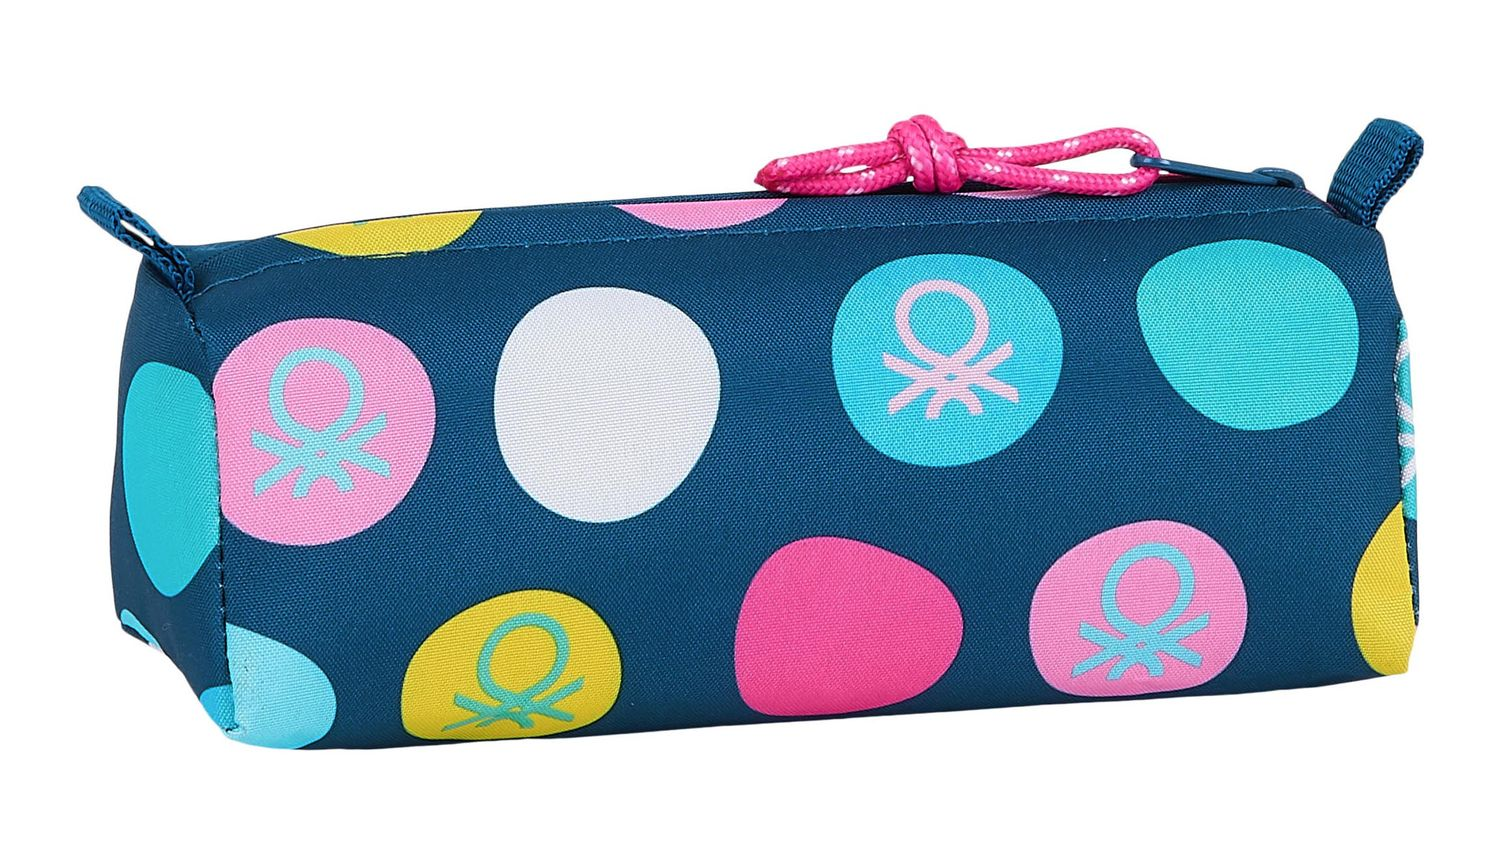 BENETTON NAVY BLUE POLKA DOTS Square Pencil Case – image 2